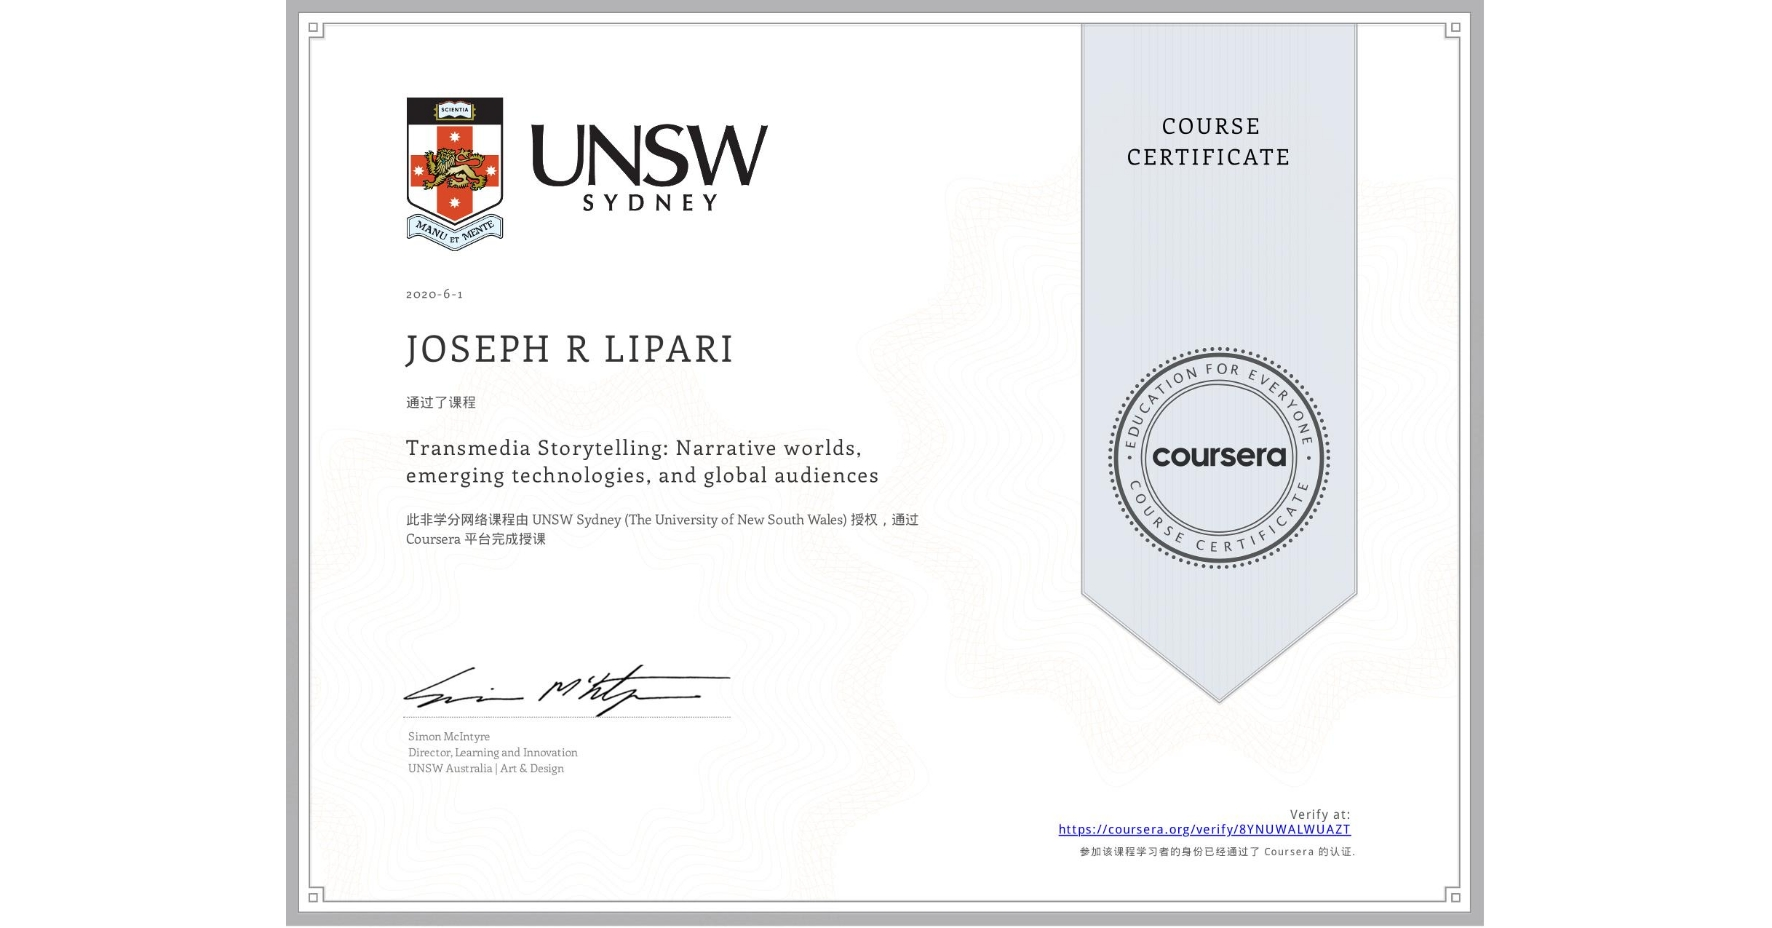 View certificate for JOSEPH R  LIPARI, Transmedia Storytelling: Narrative worlds, emerging technologies, and global audiences, an online non-credit course authorized by UNSW Sydney (The University of New South Wales) and offered through Coursera